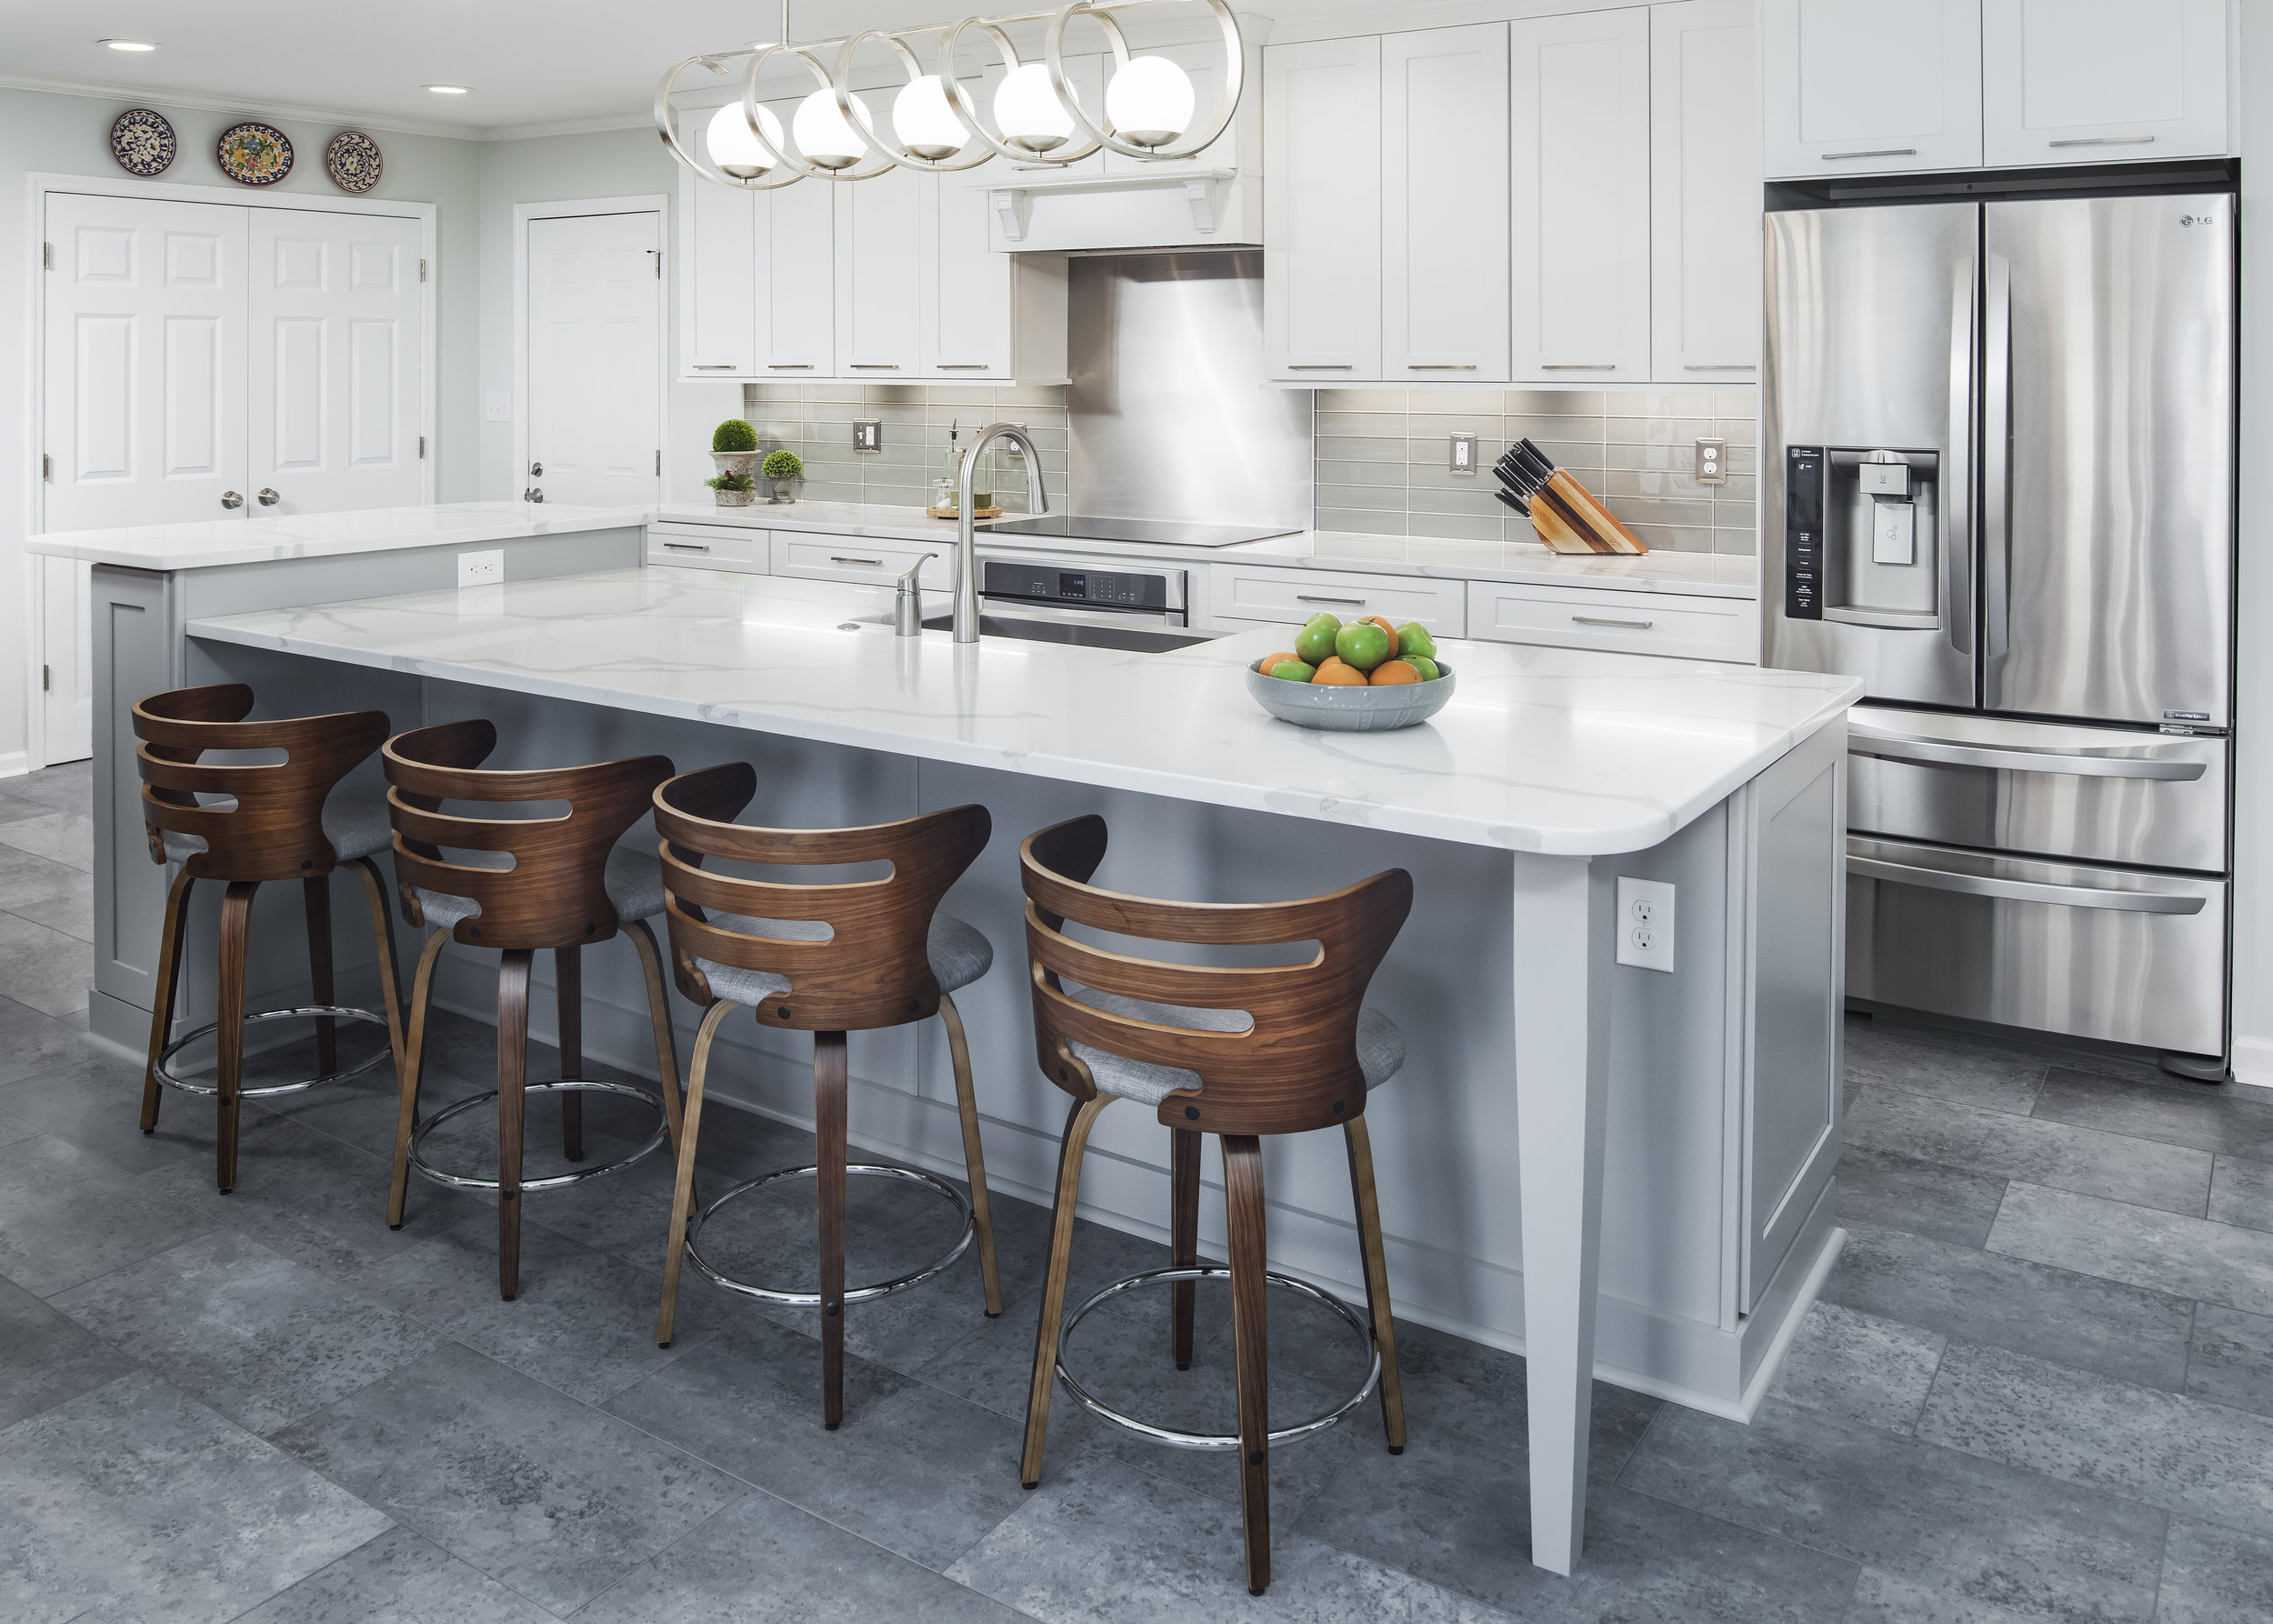 kitchen remodel with cabinets, pendant lighting, island, bar seating